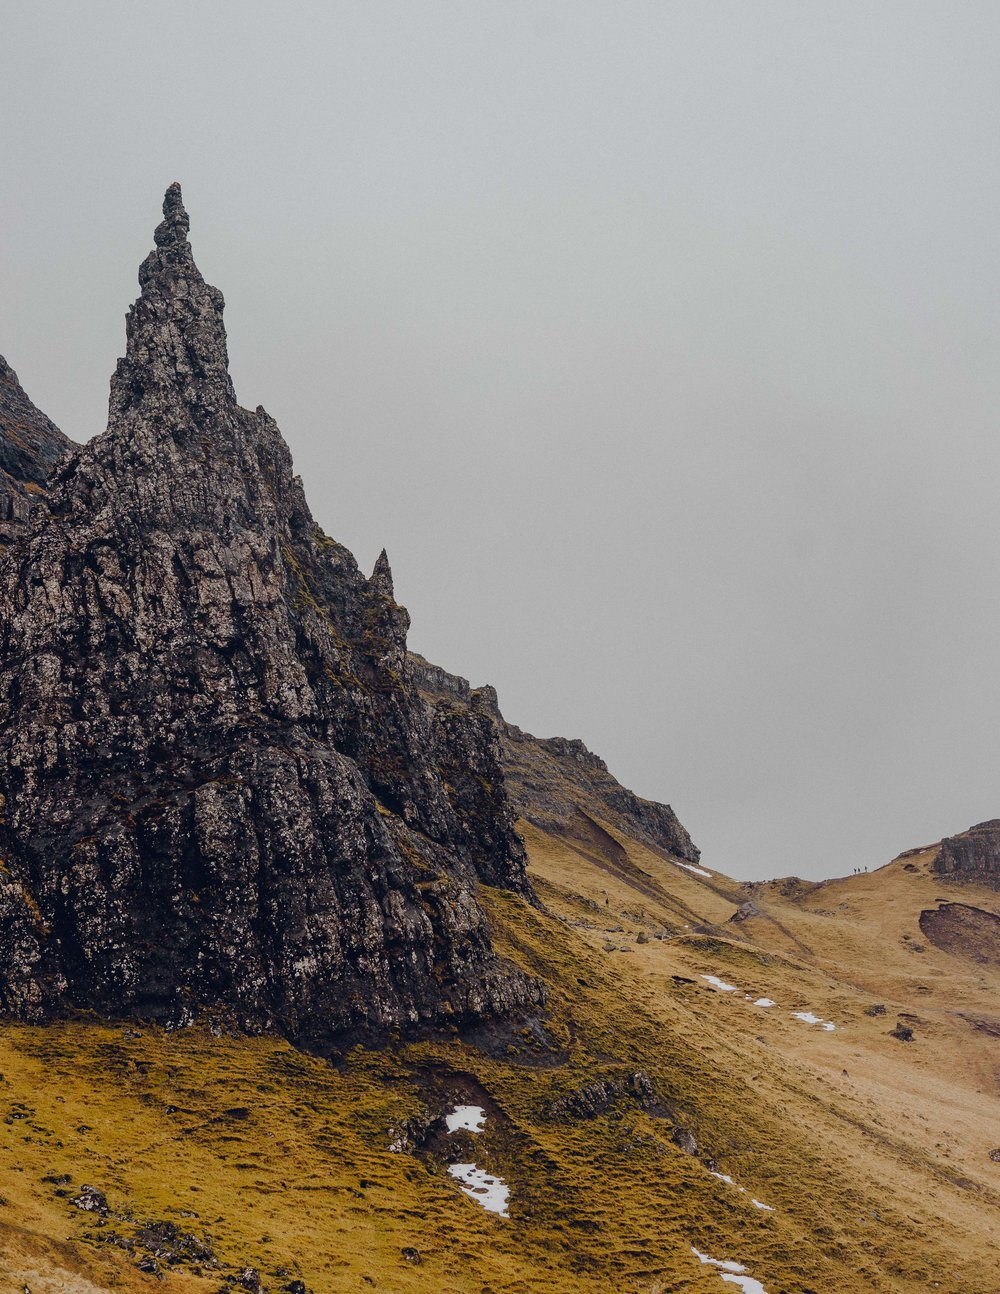 ASROSENVINGE_Scotland_Isle_Of_Skye_Old_Man_Of_Storr-03870.jpg